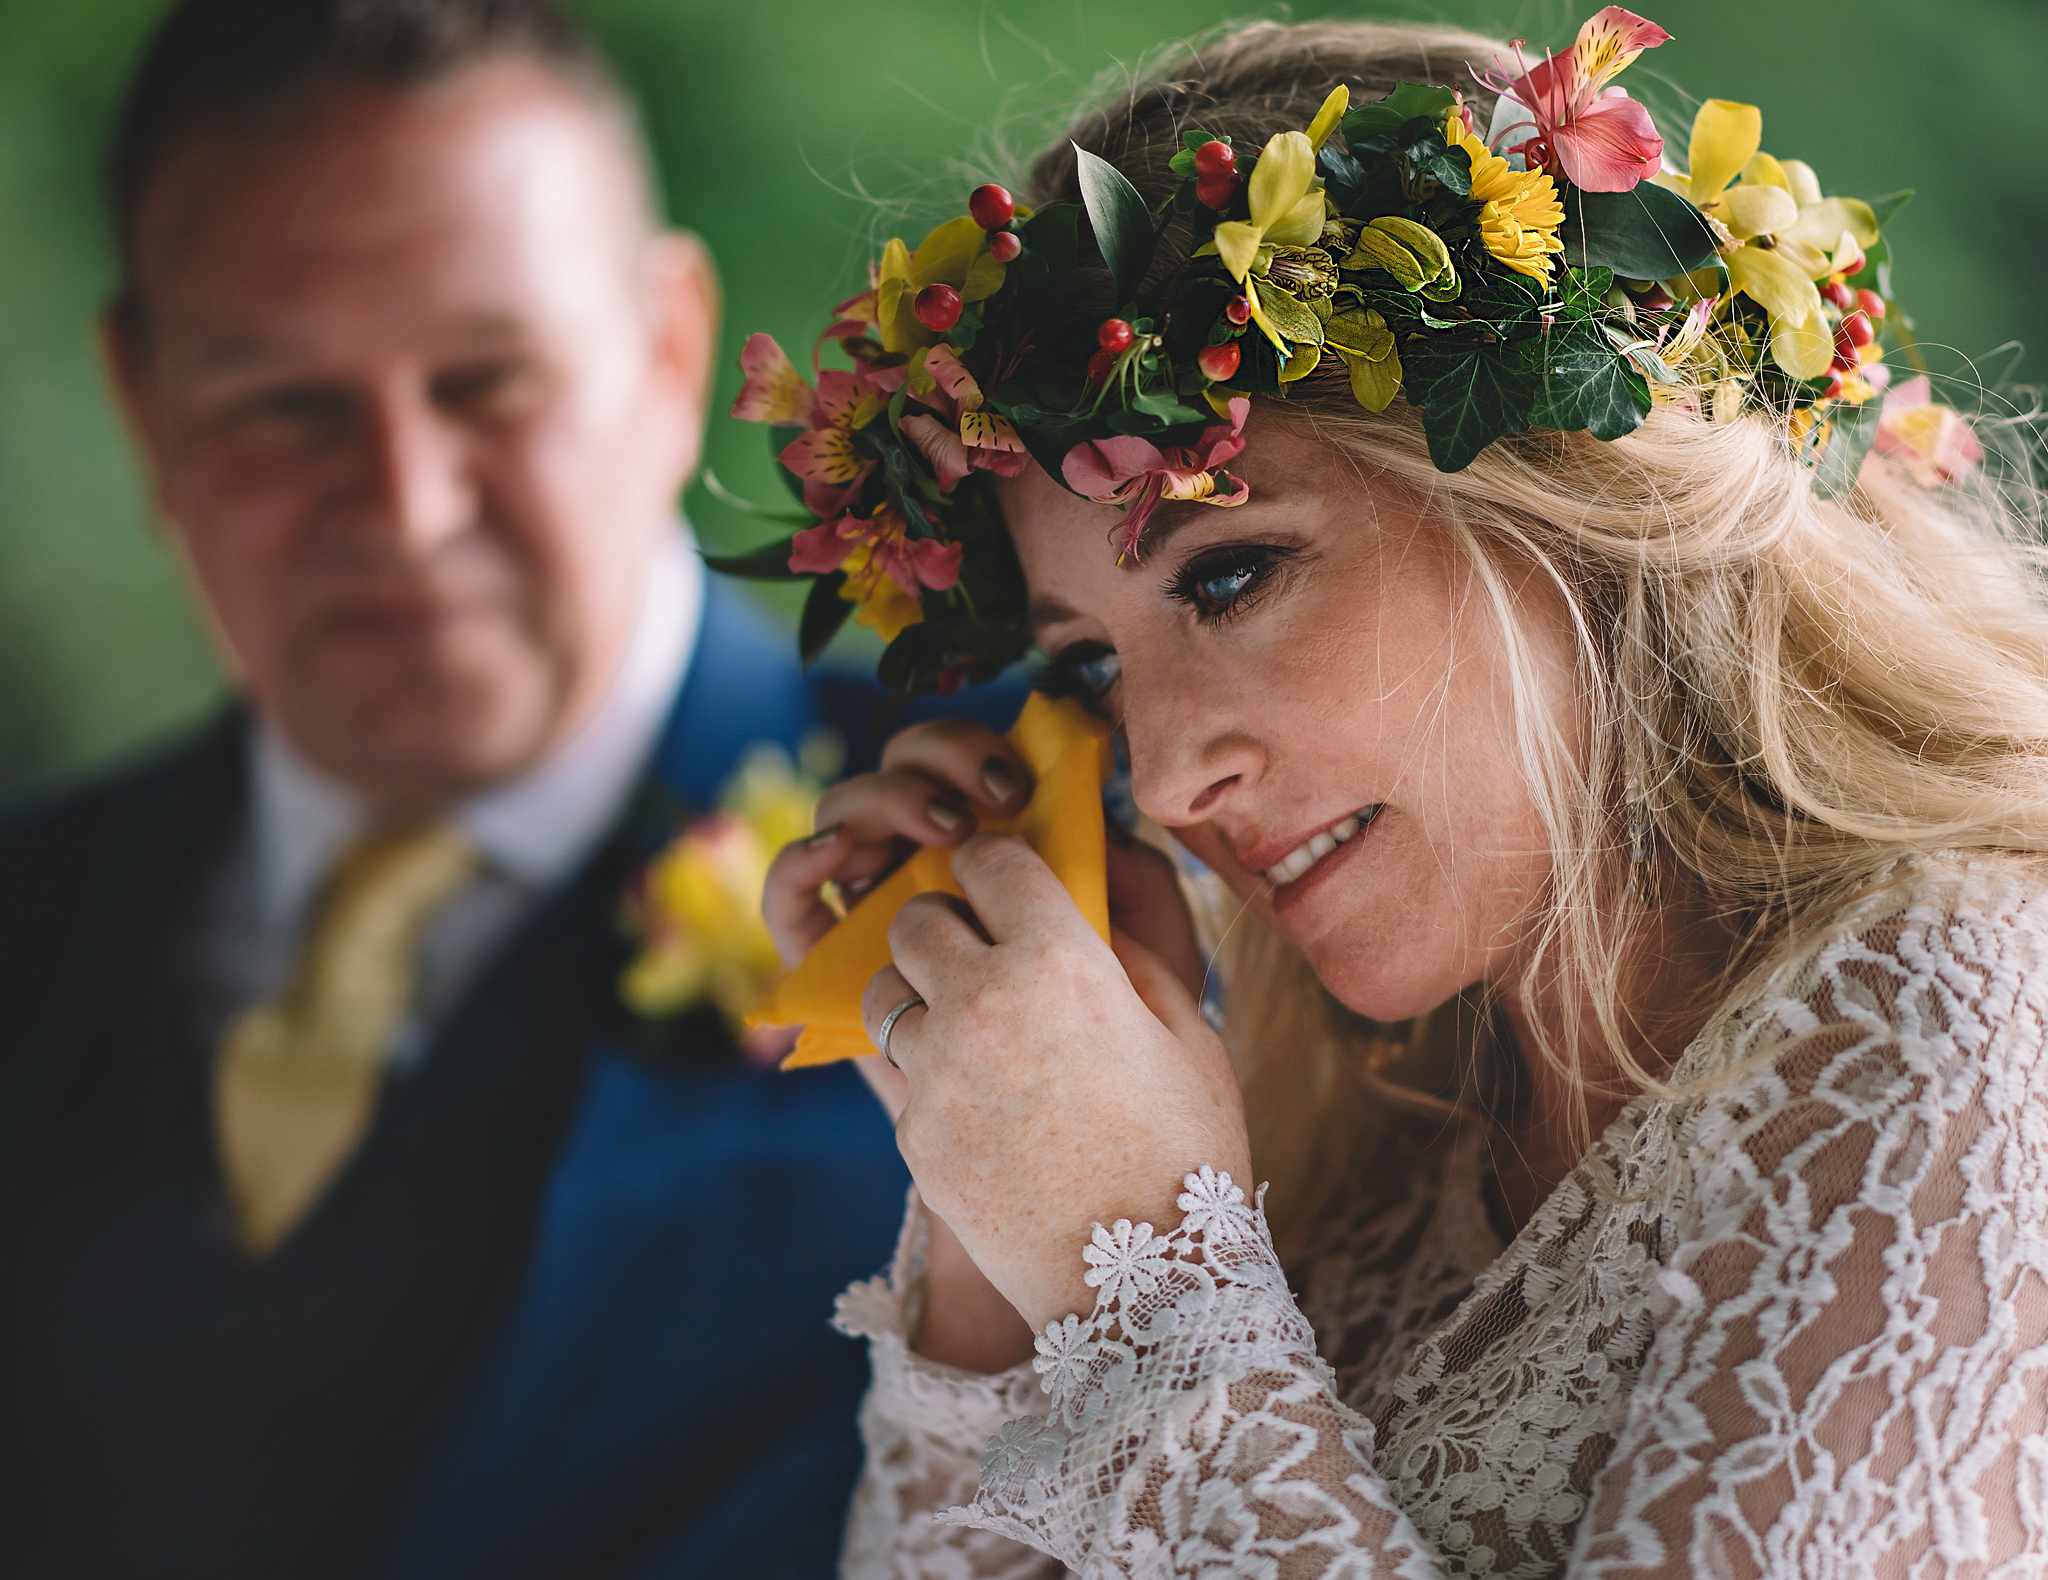 Bride wearing tropical floral crown of lillies, orchids, and seed pods - photographed by Edwin Tan - Malaysia